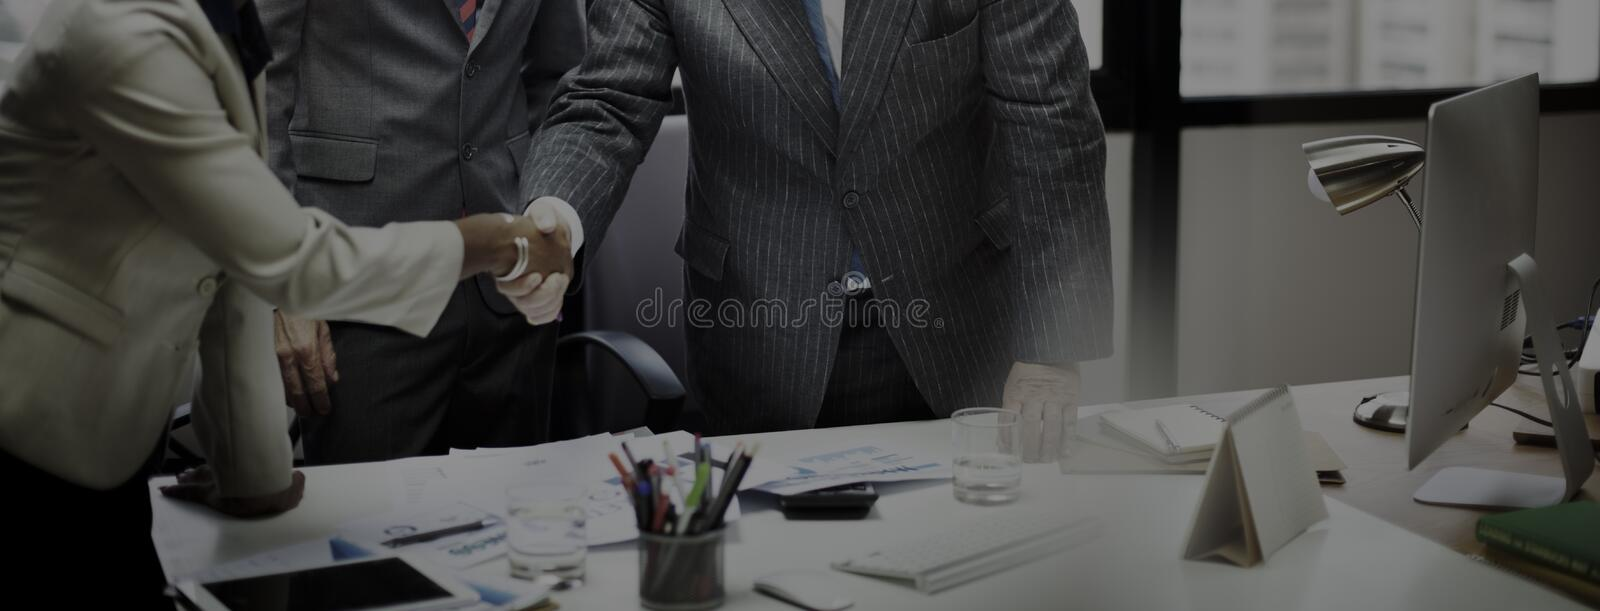 Business People Meeting Corporate Handshake Greeting Concept royalty free stock photos